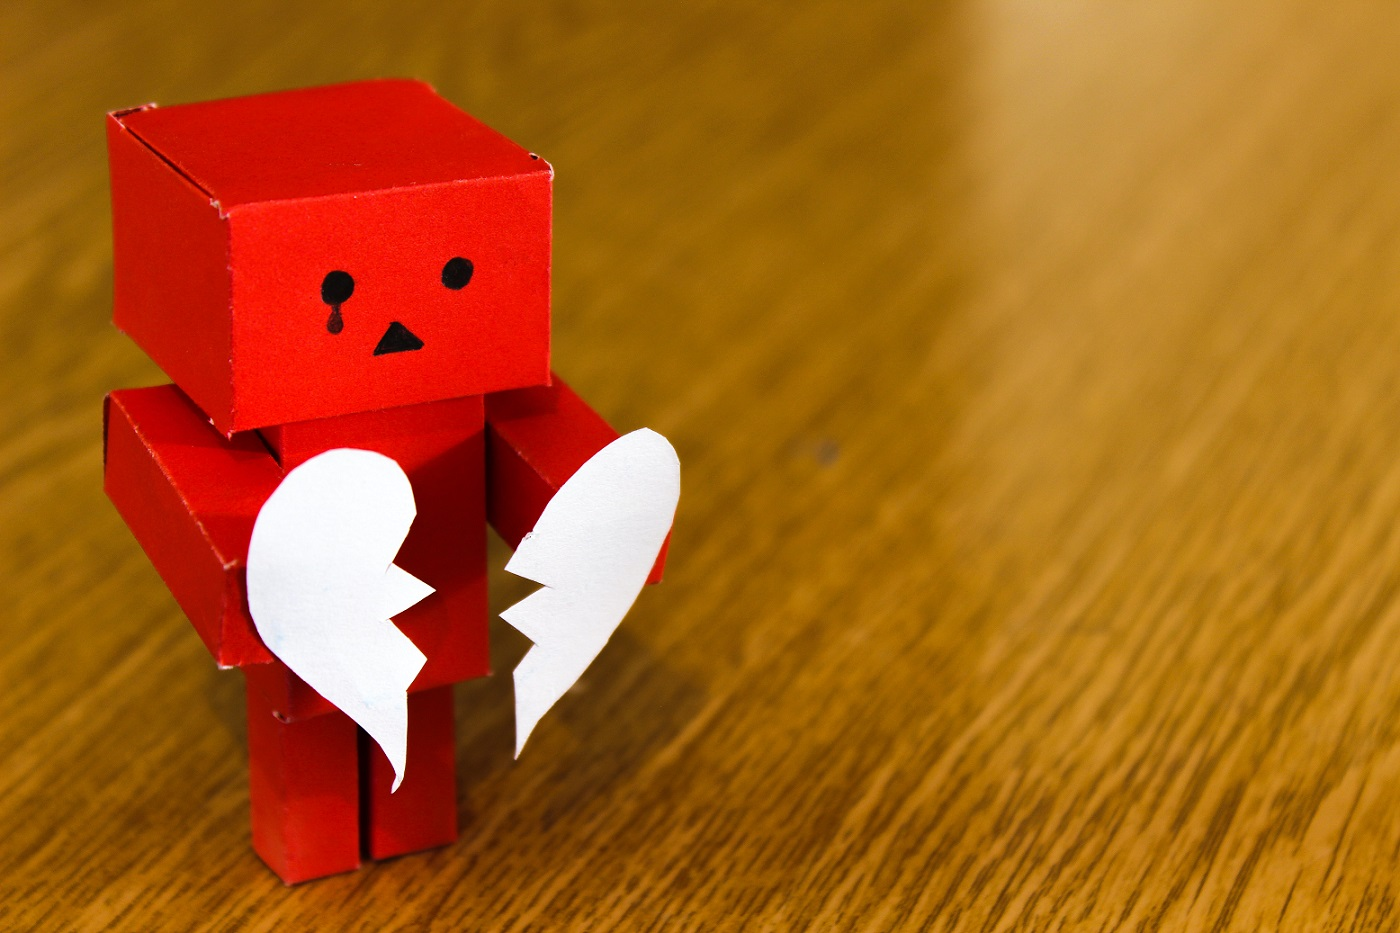 Cheating heart with robot